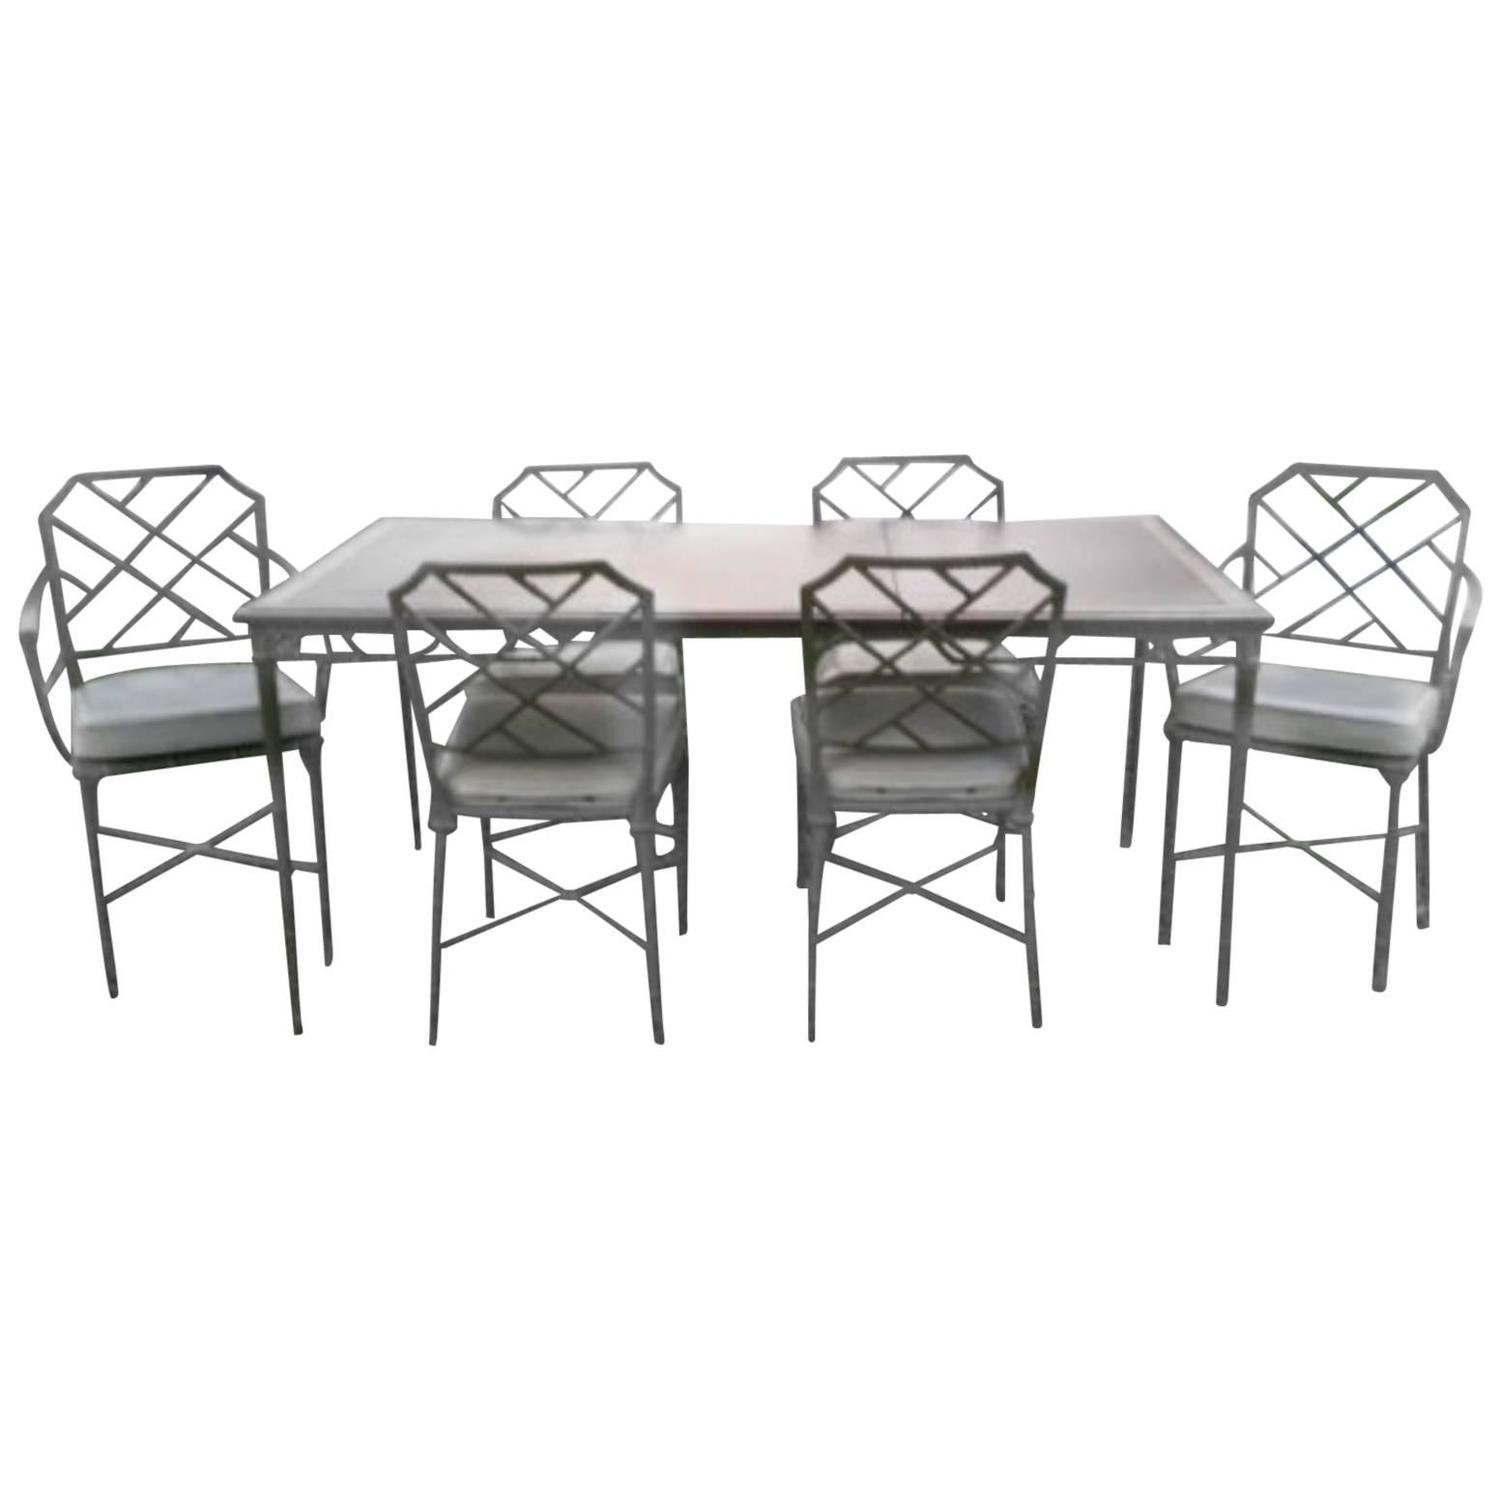 Brown Jordan Seven Piece Calcutta Faux Bamboo Patio Set Of Dining Table Chairs